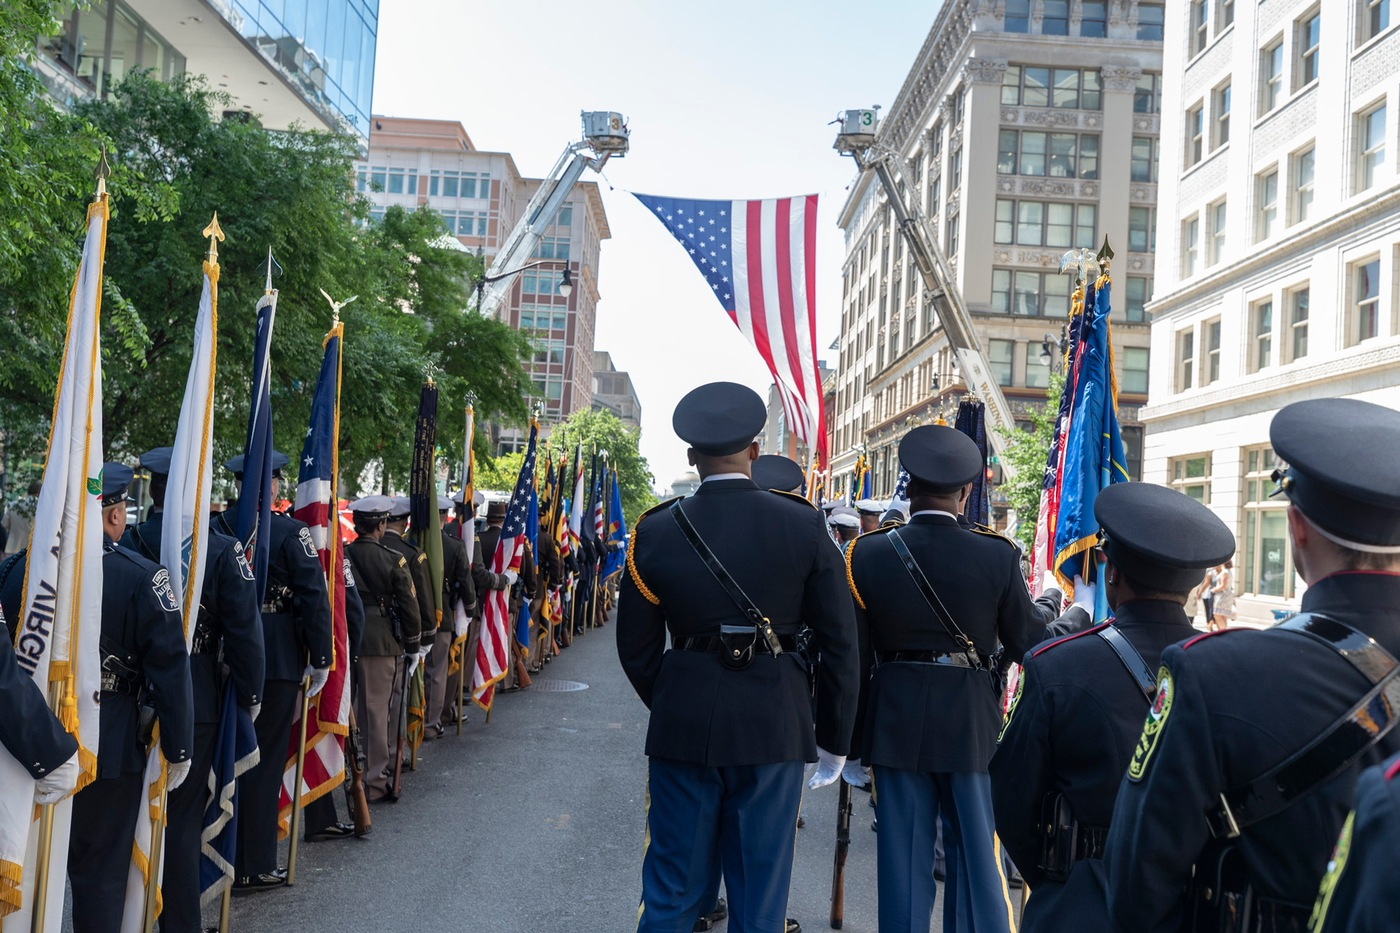 National Police Week 2019: Blue Mass Procession